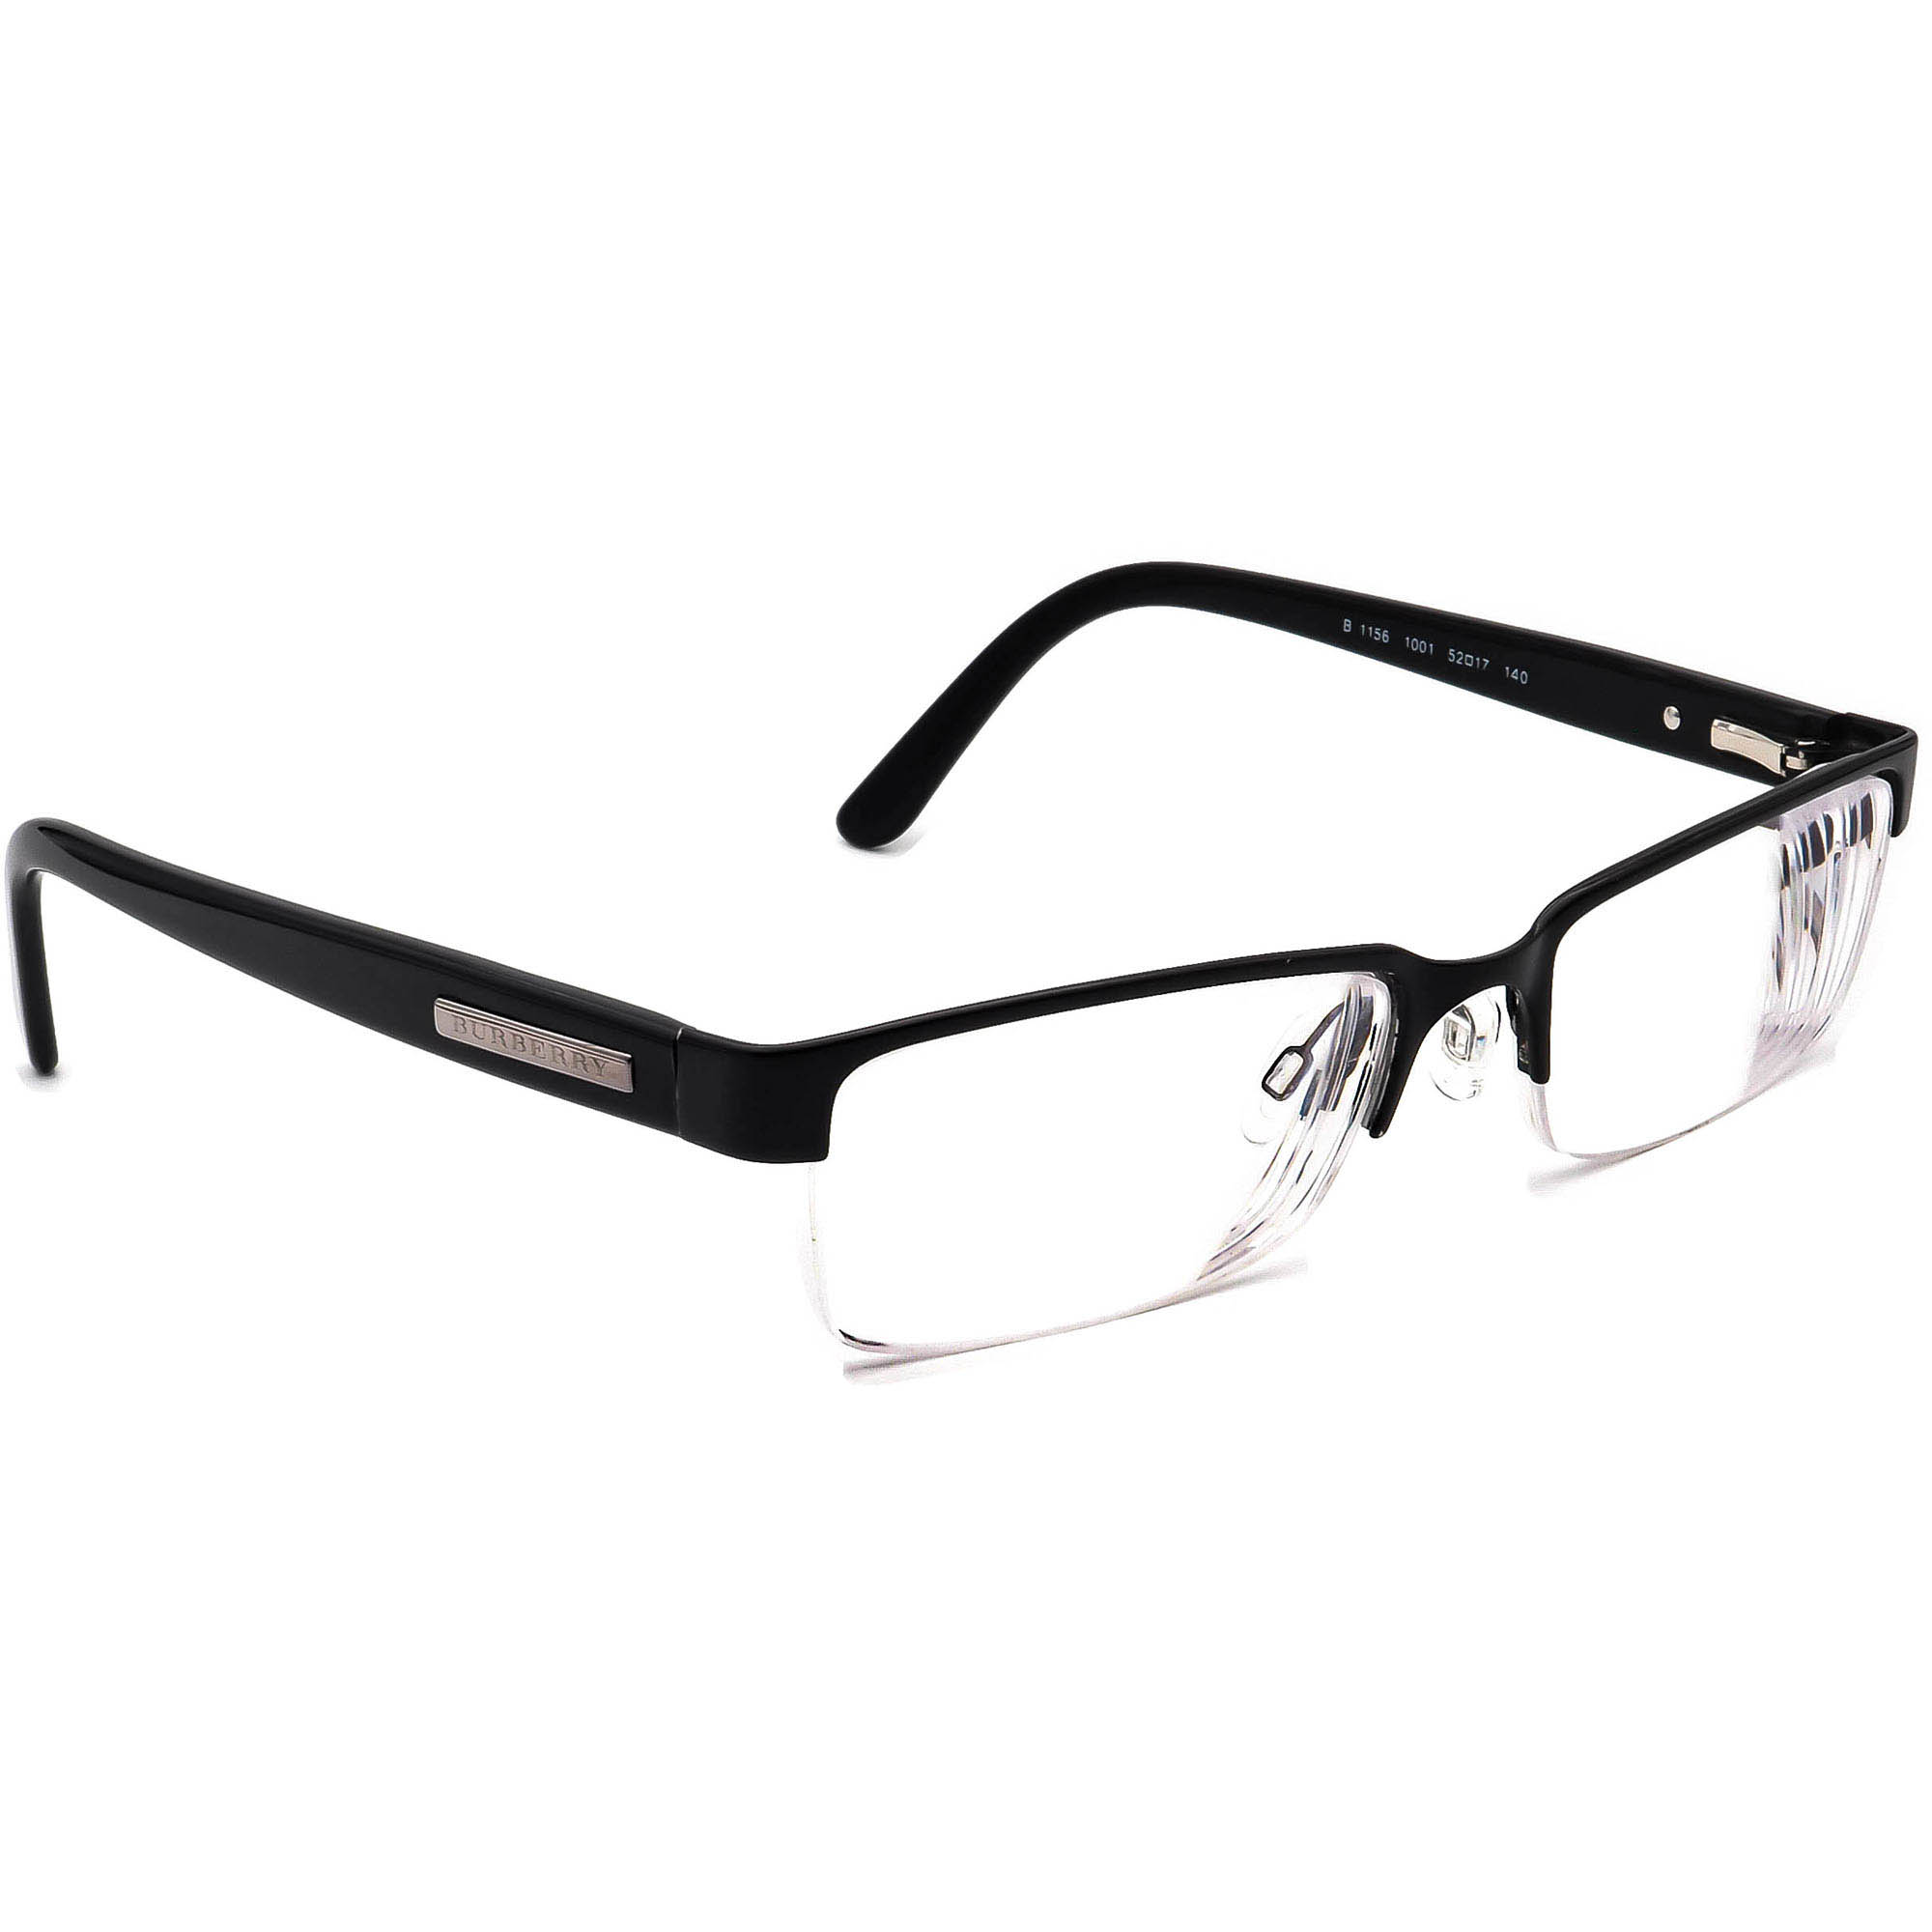 Burberry B 1156 1001 Eyeglasses